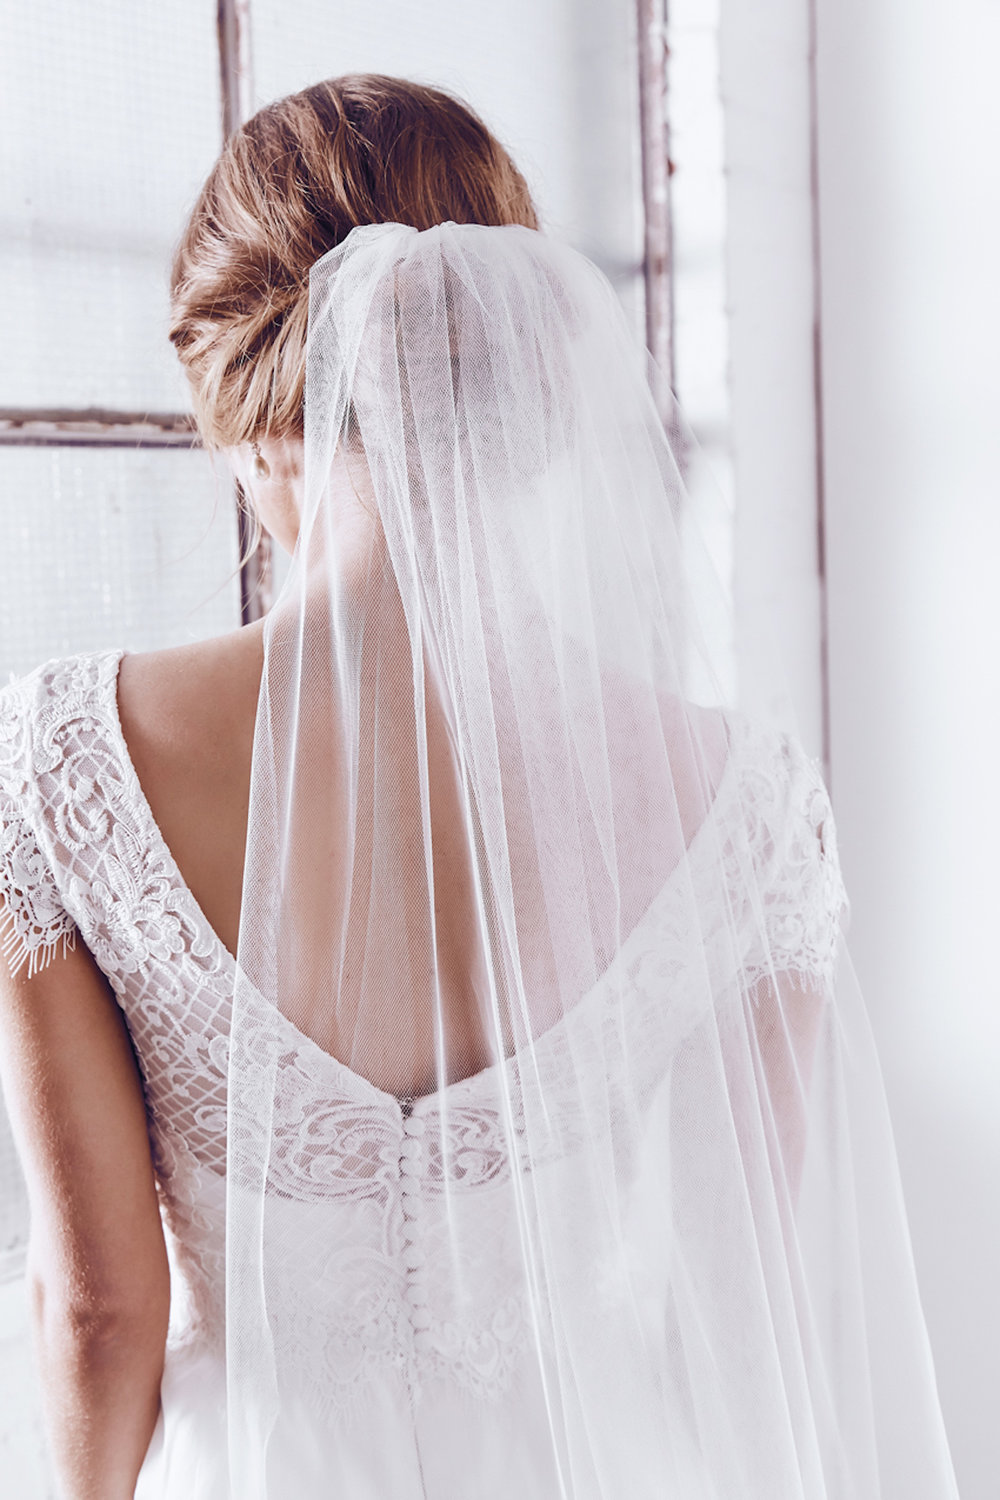 Ceremony Collection_Single Tier Veil_closeup.jpg